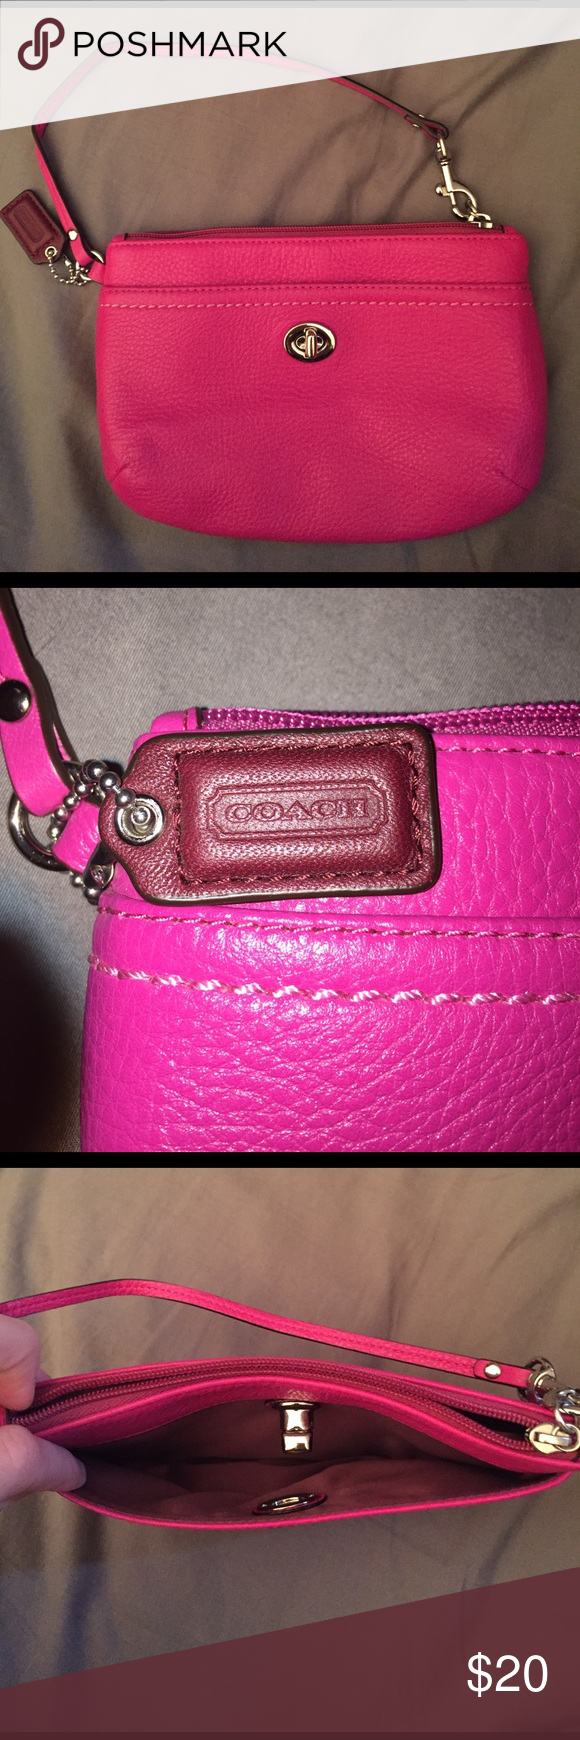 Great quality Coach pink leather wristlet! Nice pink color! Used probably once, great condition! One main zipped pocket and one smaller outside pocket that clips! Coach Bags Clutches & Wristlets